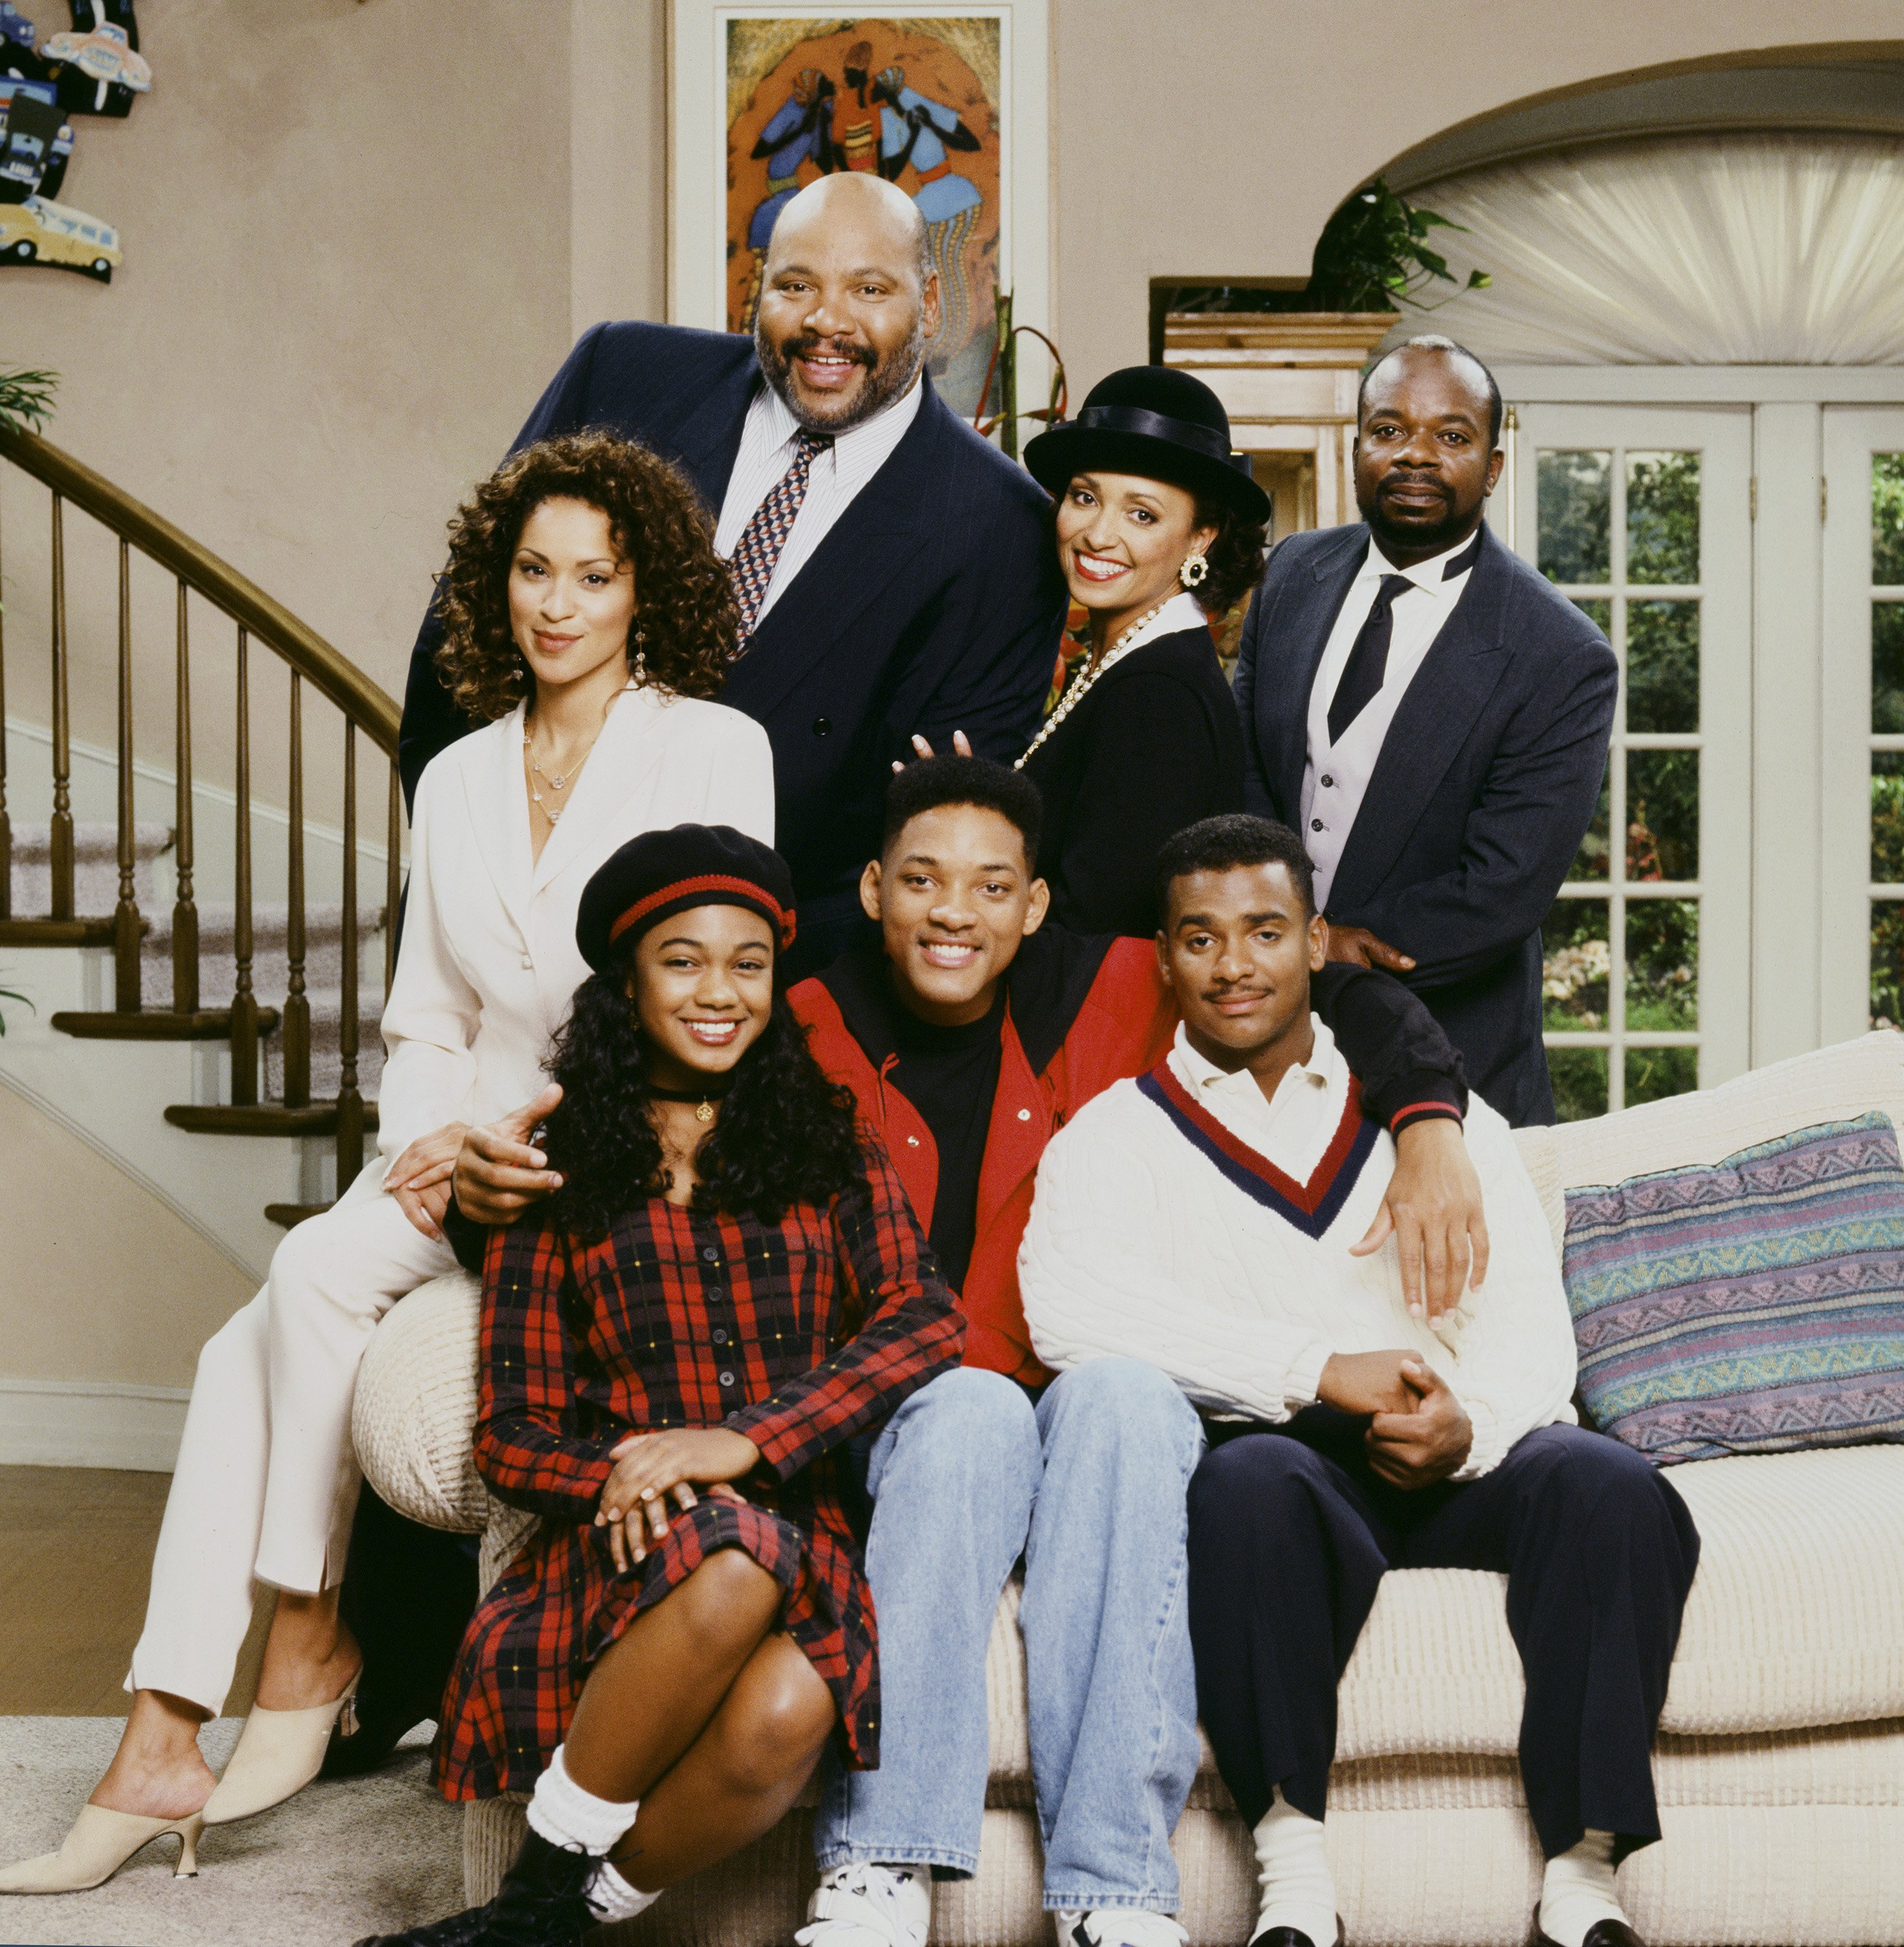 """""""The Fresh Prince of Bel-Air"""" cast:  Karyn Parsons, James Aver,  Daphne Reid, Joseph Marcell, Tatyana Ali, Will Smith, and Alfonso Ribeiro Photo: GettyImages"""